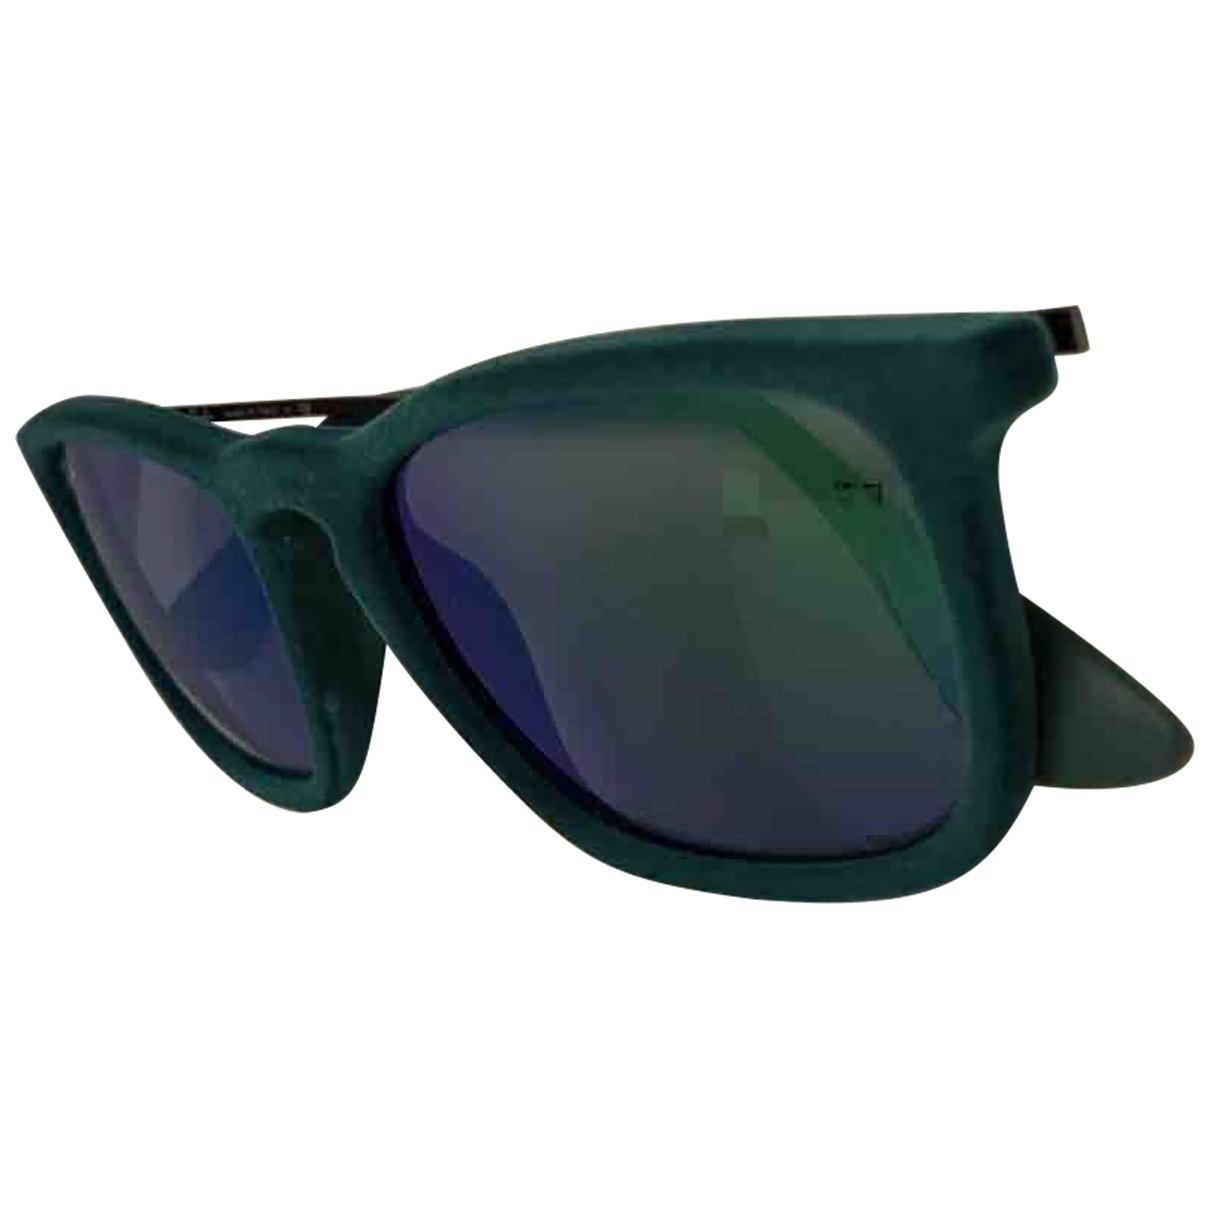 Ray-ban N Green Sunglasses for Men N